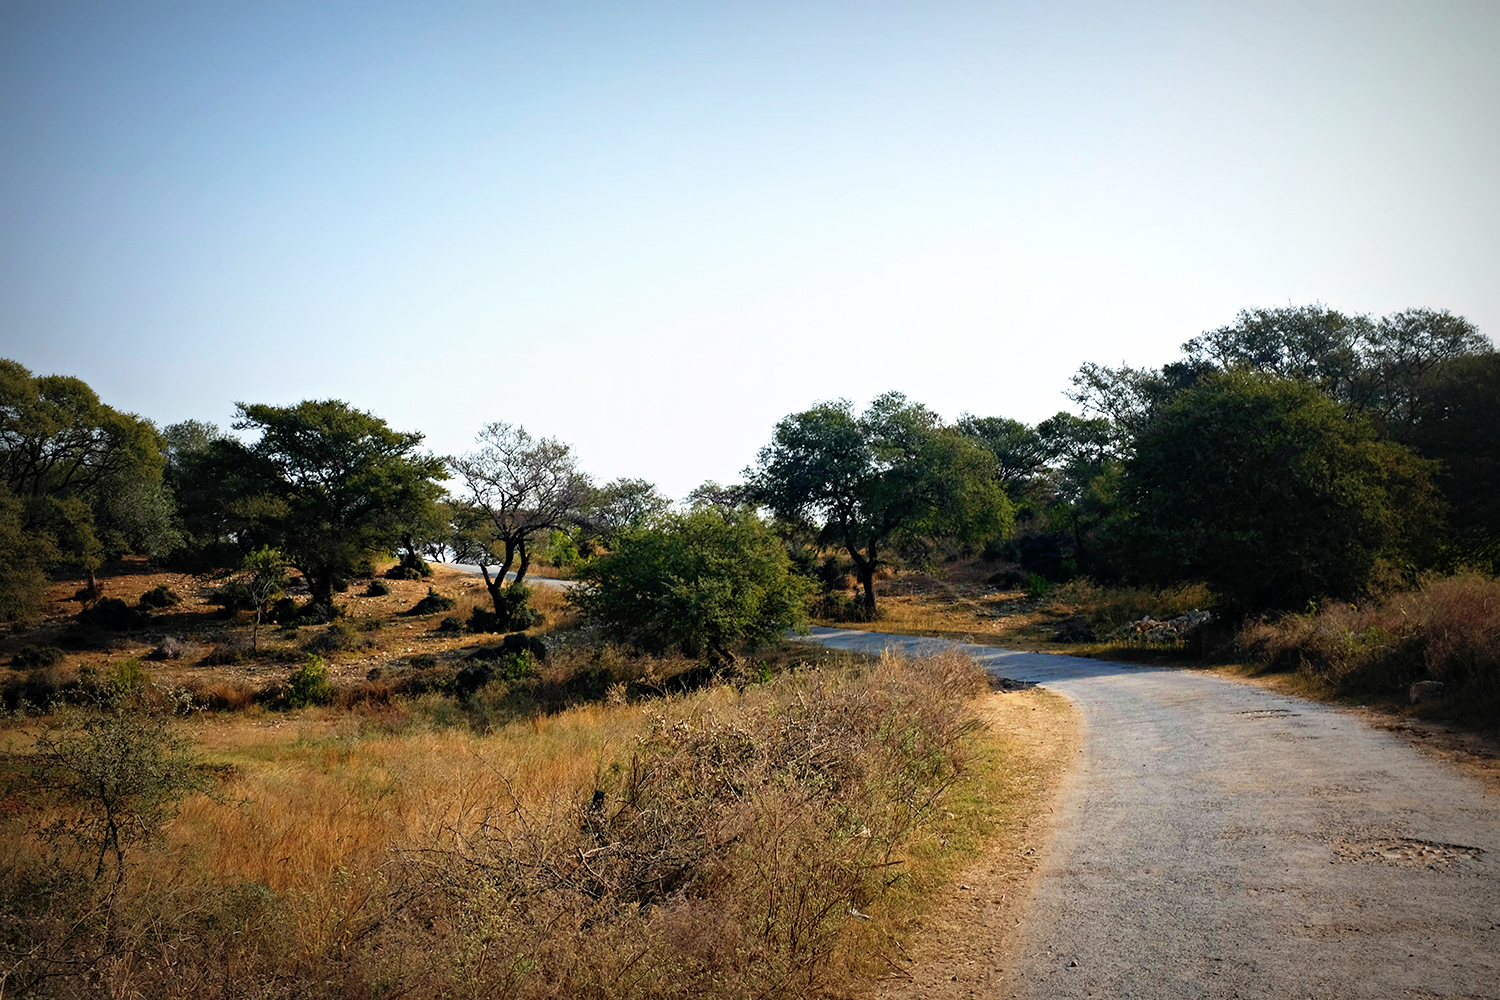 The scenic landscape makes driving through Potohar a memorable experience.